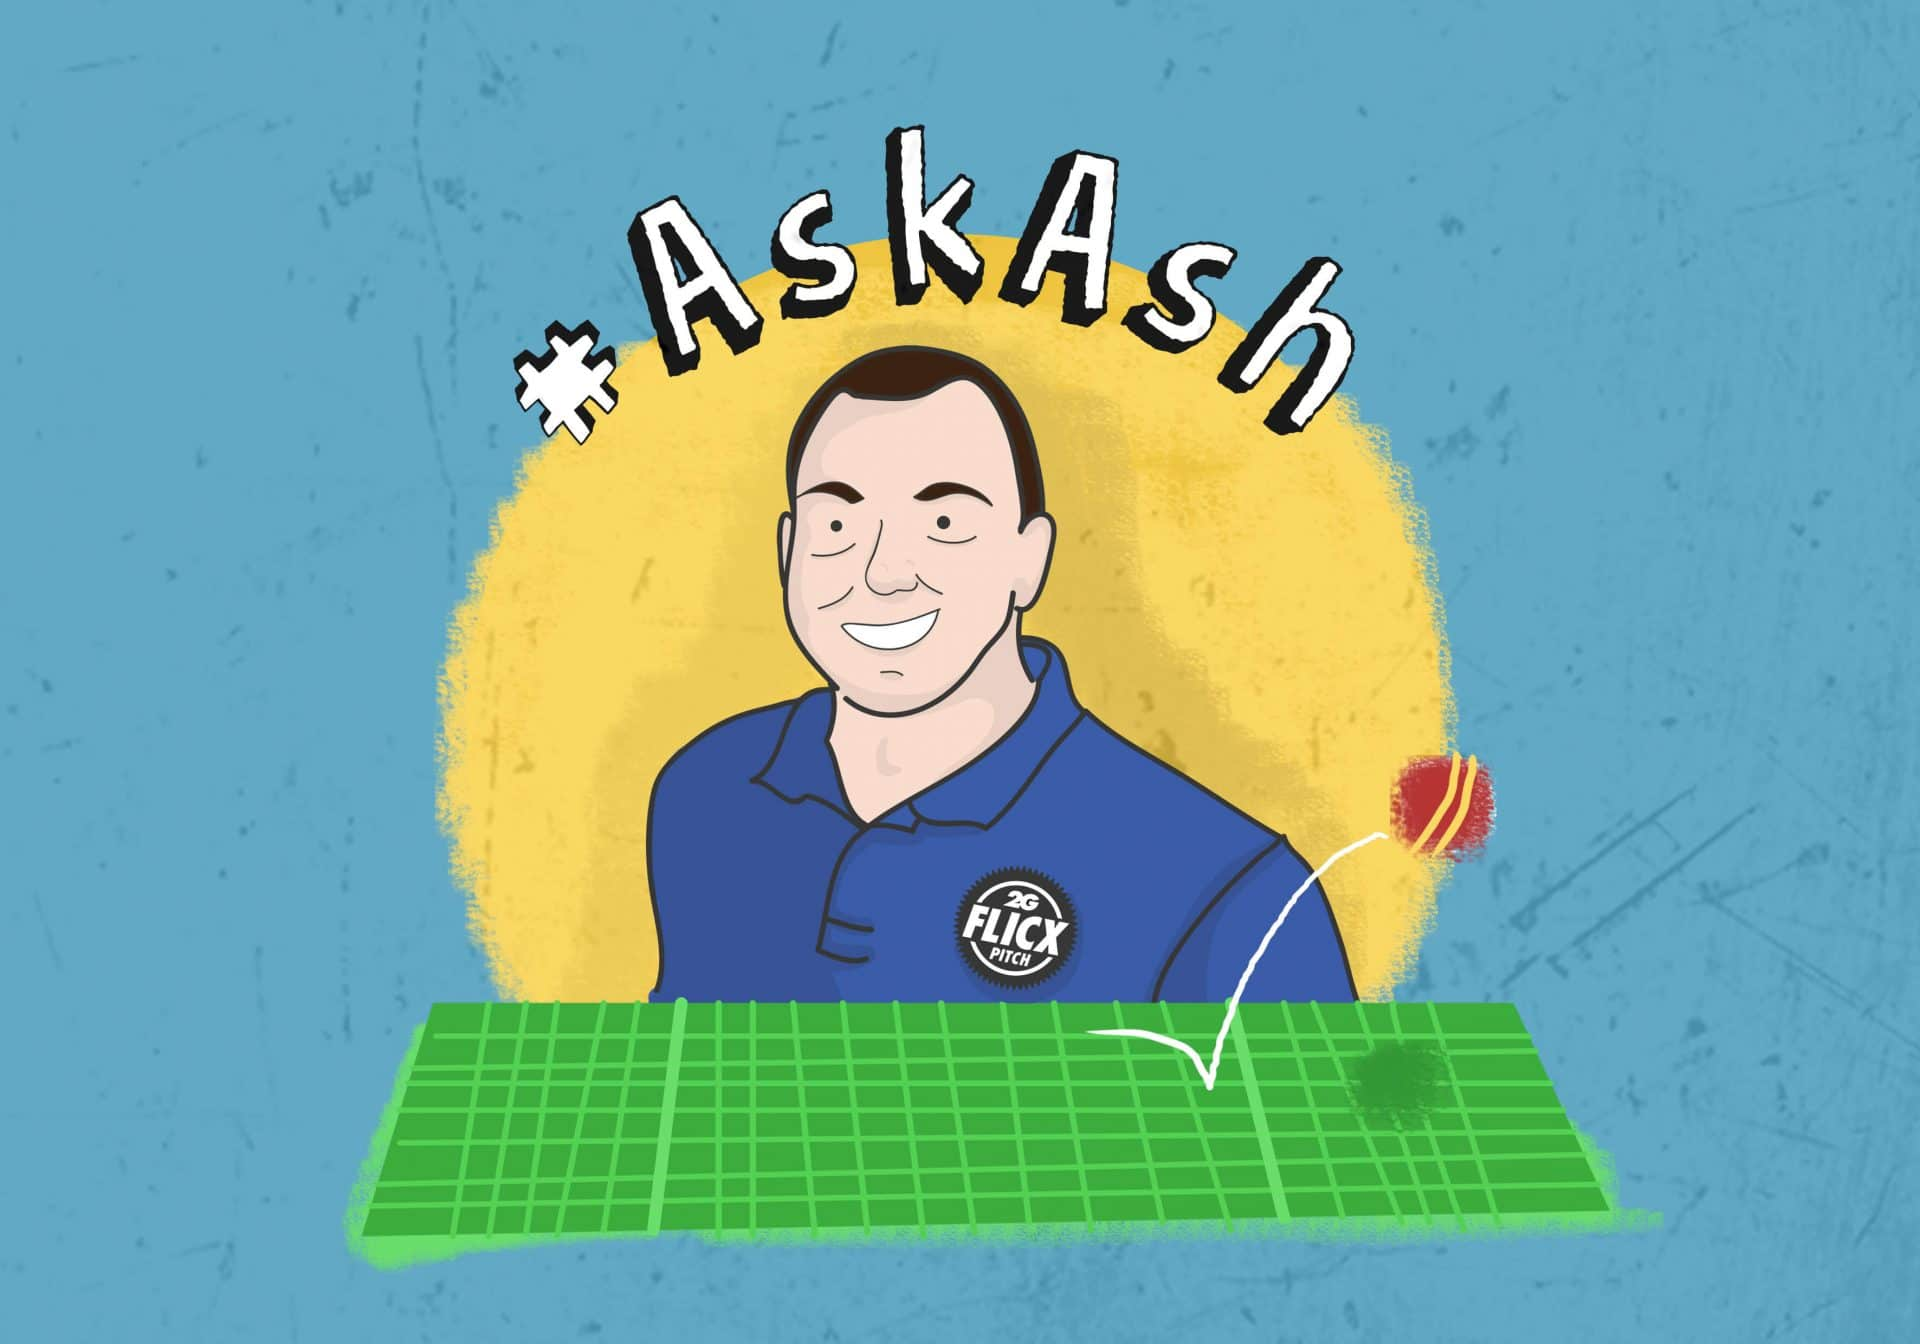 #AskAsh the 2G Flicx Pitch vlog